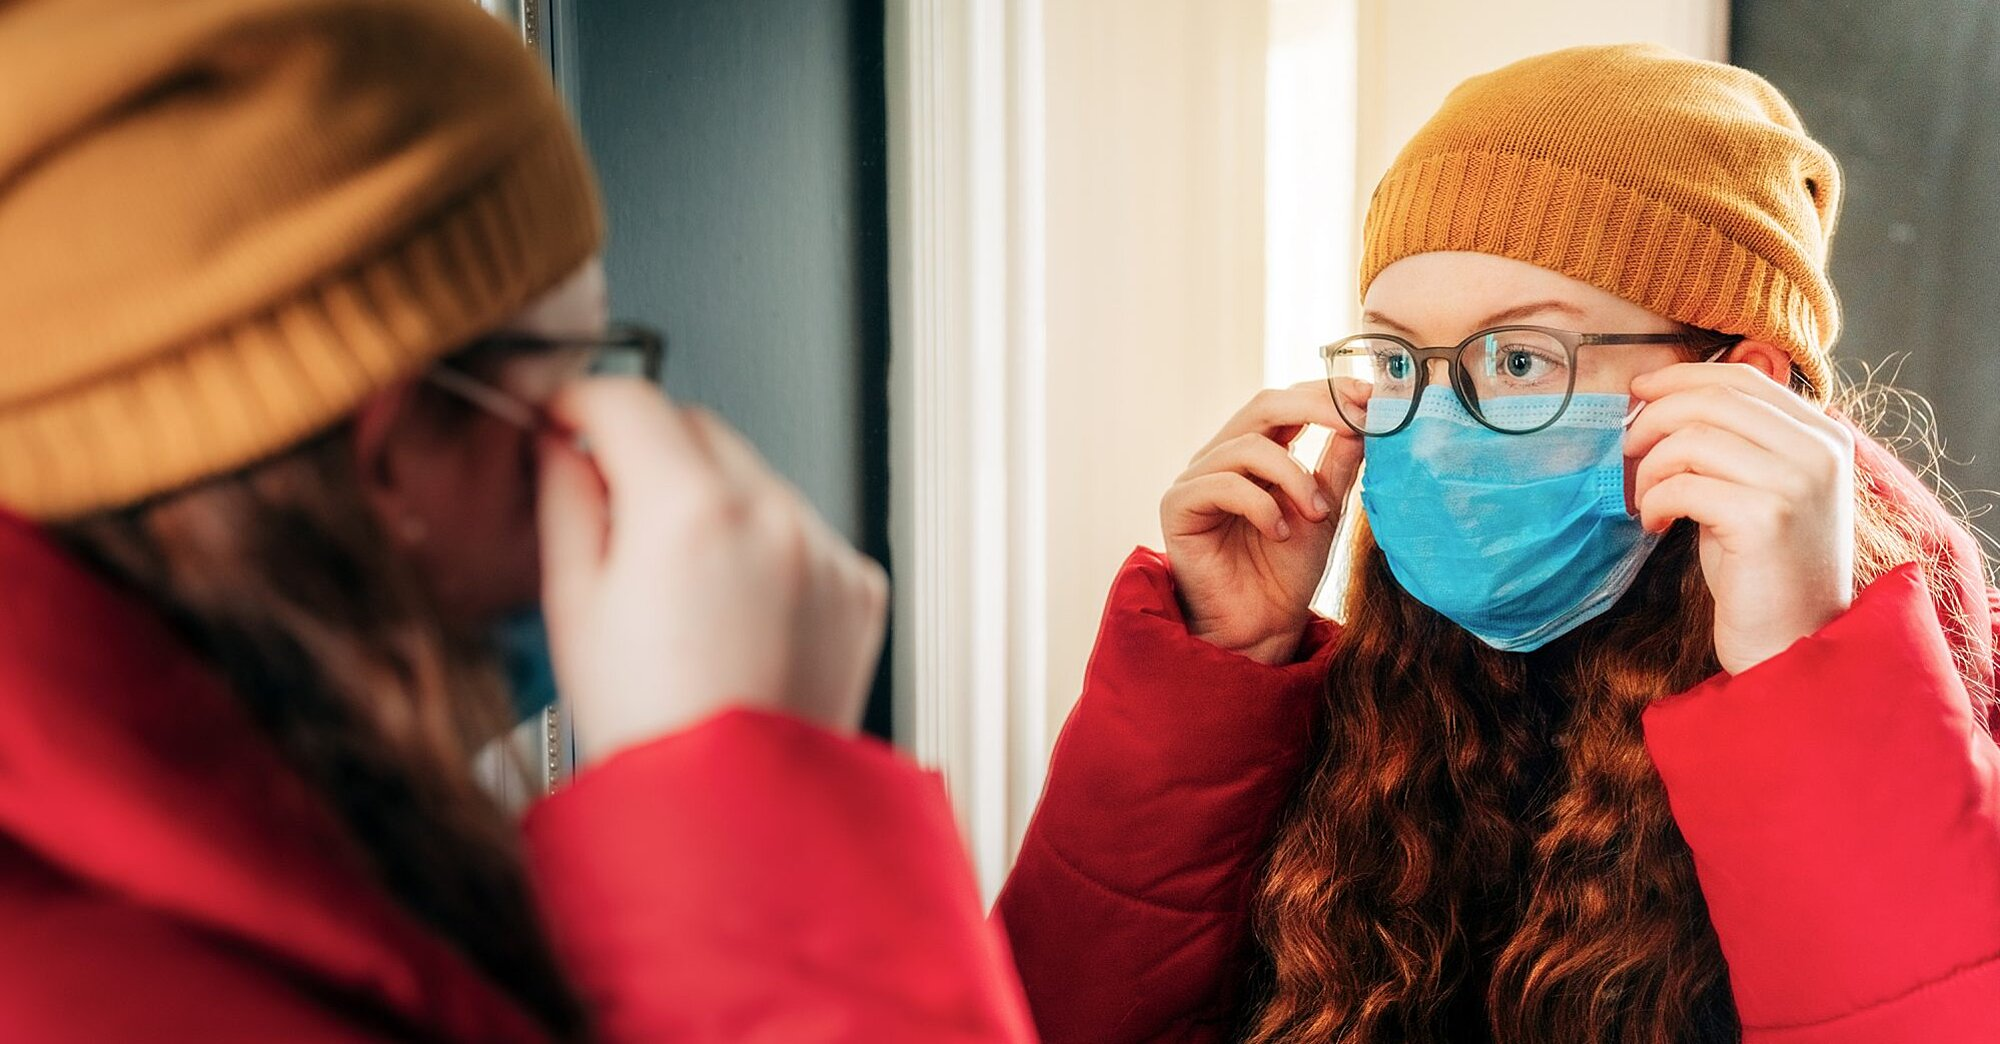 How to Keep Your Glasses From Fogging Up While Wearing a Face Mask